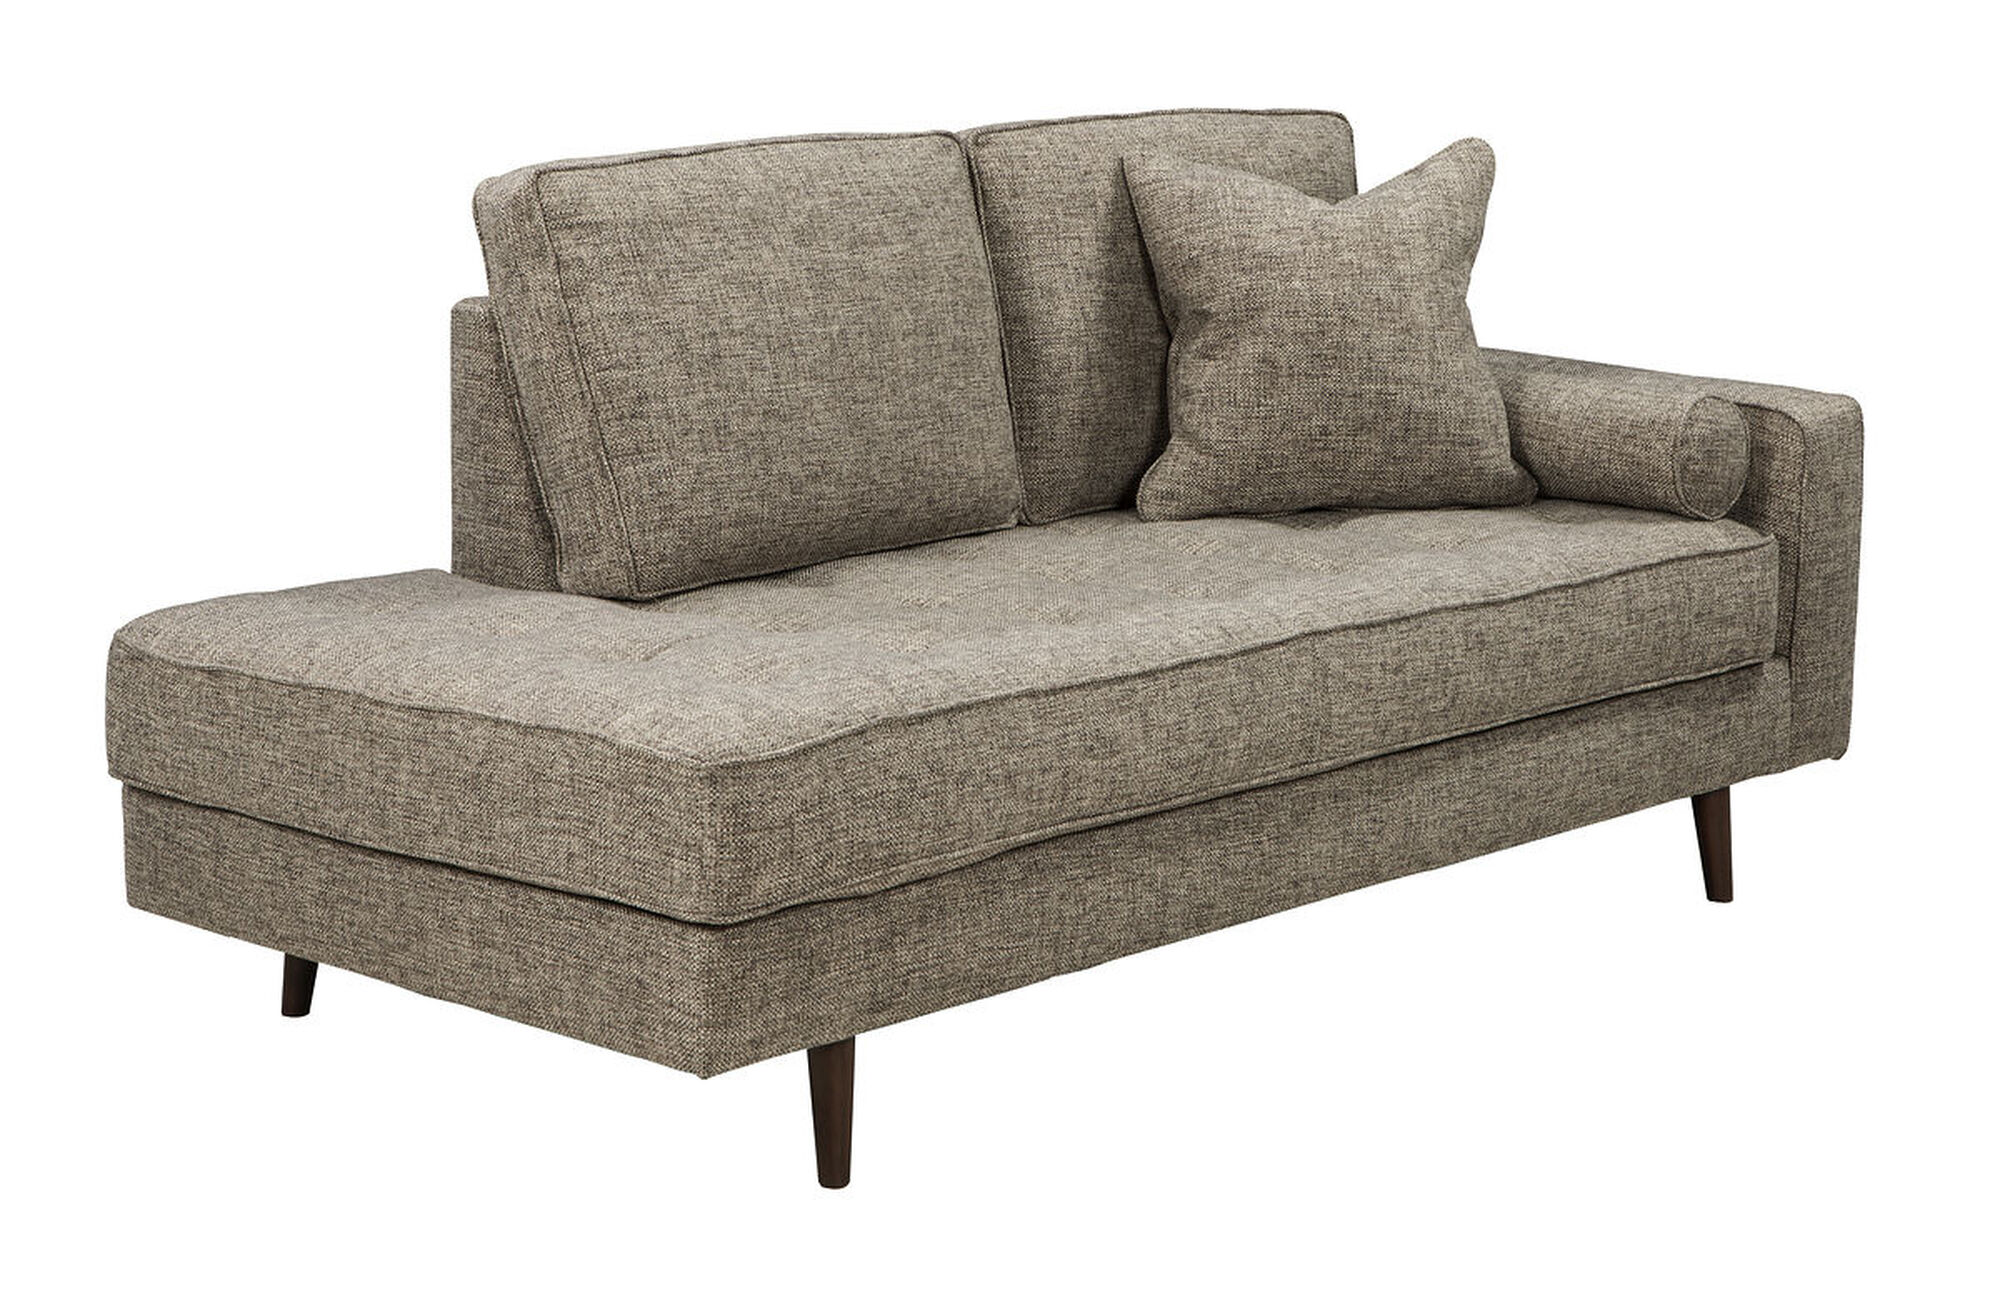 Tufted Mid Century Modern Right Arm Chaise In Jute Mathis Brothers Furniture